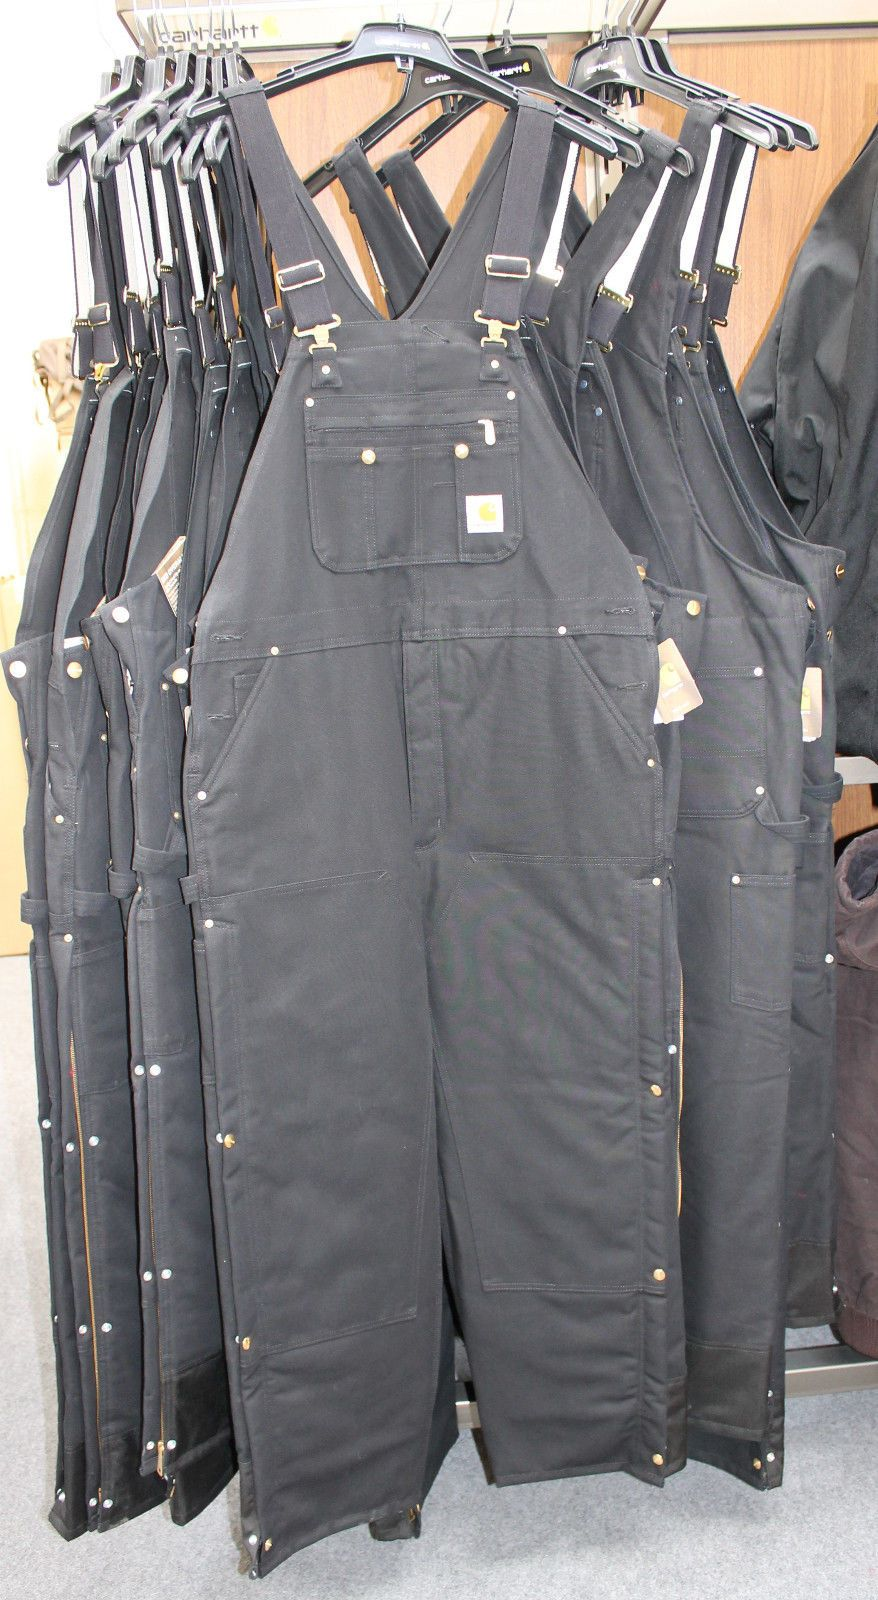 2e4a1df37a New Carhartt R41 Duck Zip-to-Thigh Bib Overall Quilt Lined Many Sizes  Available